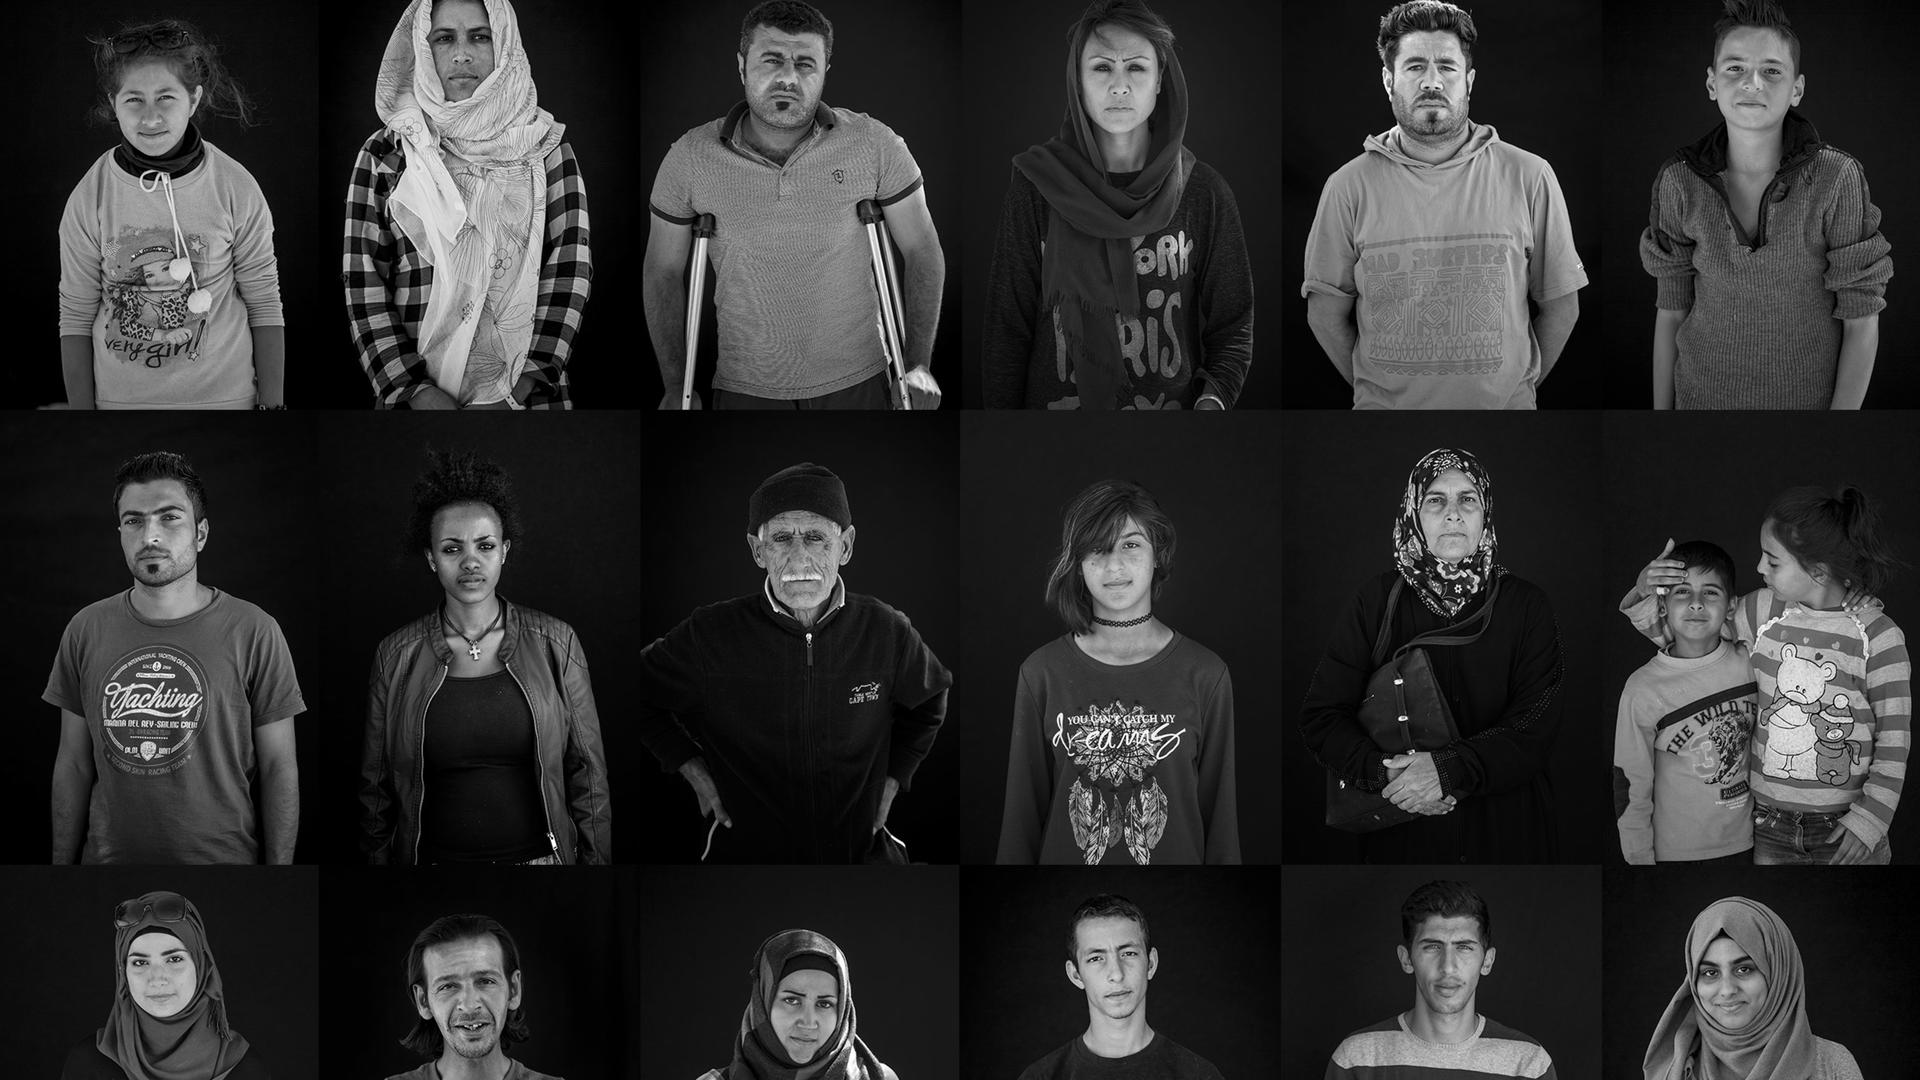 Portraits of refugees stranded in Greece.